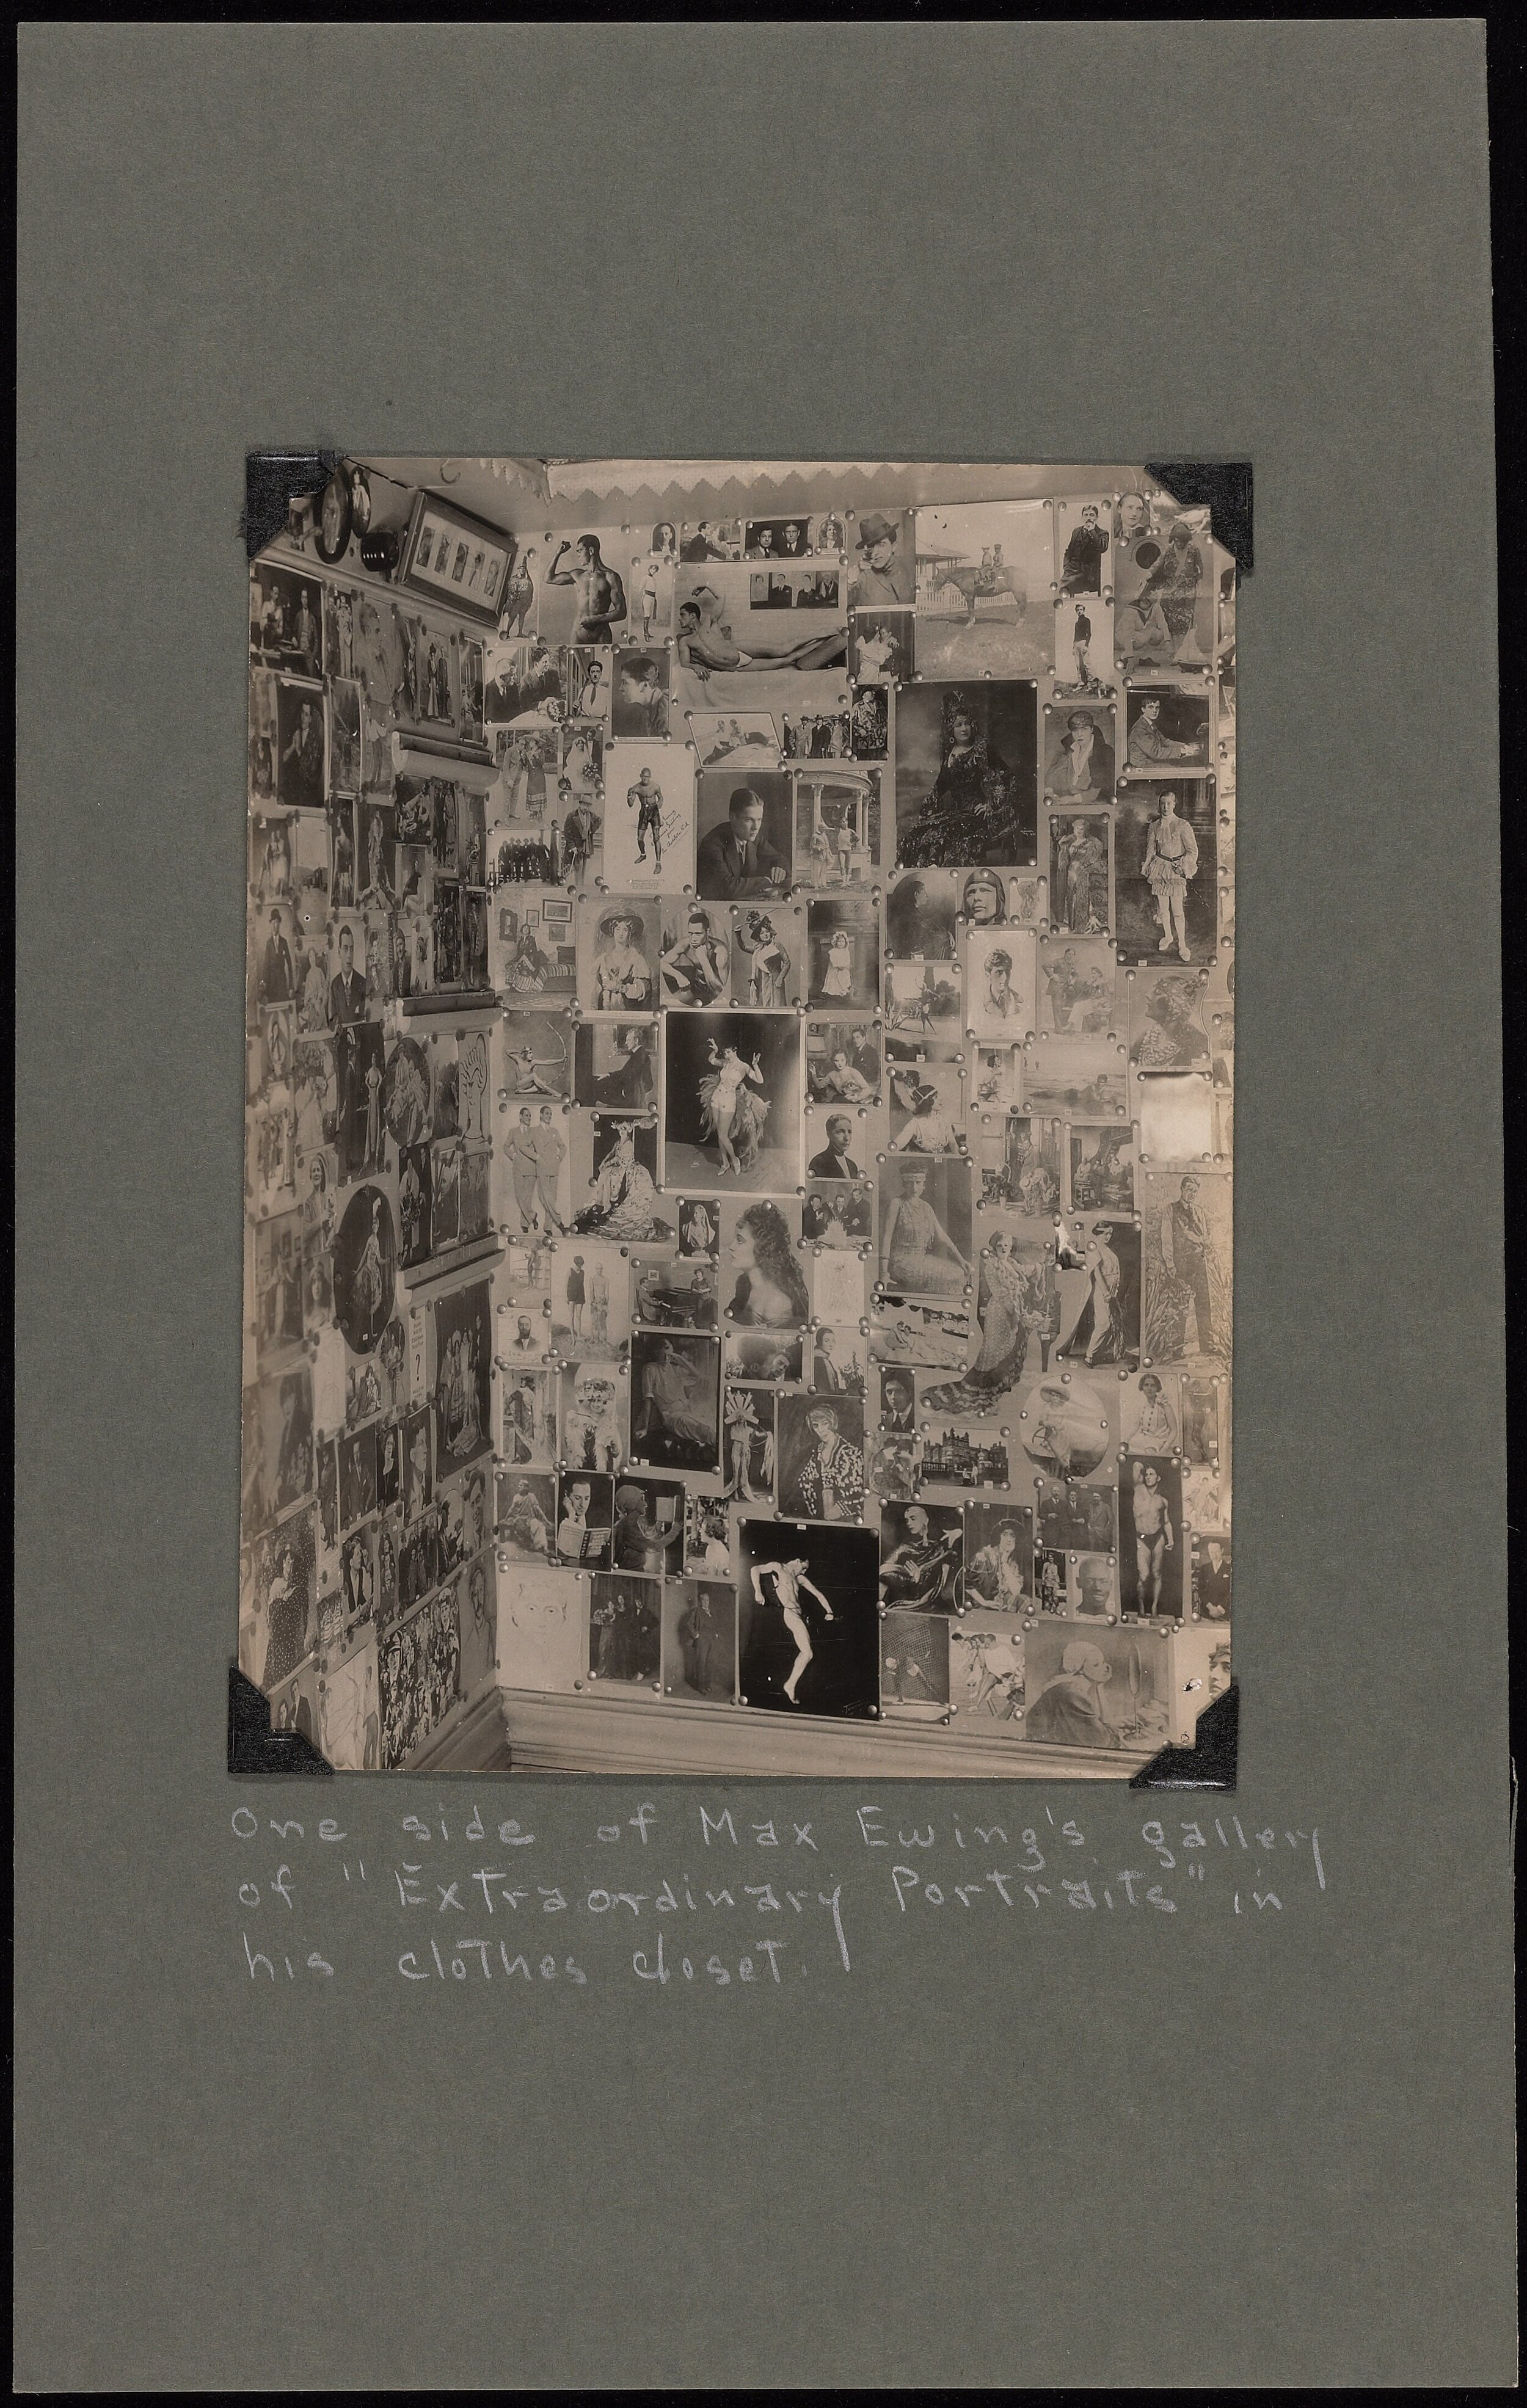 """Figure 1. Max Ewing, Photograph of One Side of Max Ewing's 'Gallery of Extraordinary Portraits"""" in His Clothes Closet, 1928 or 1929. Courtesy: Beinecke Rare Book and Manuscript Library, Yale University, by permission of Wallace Ewing."""